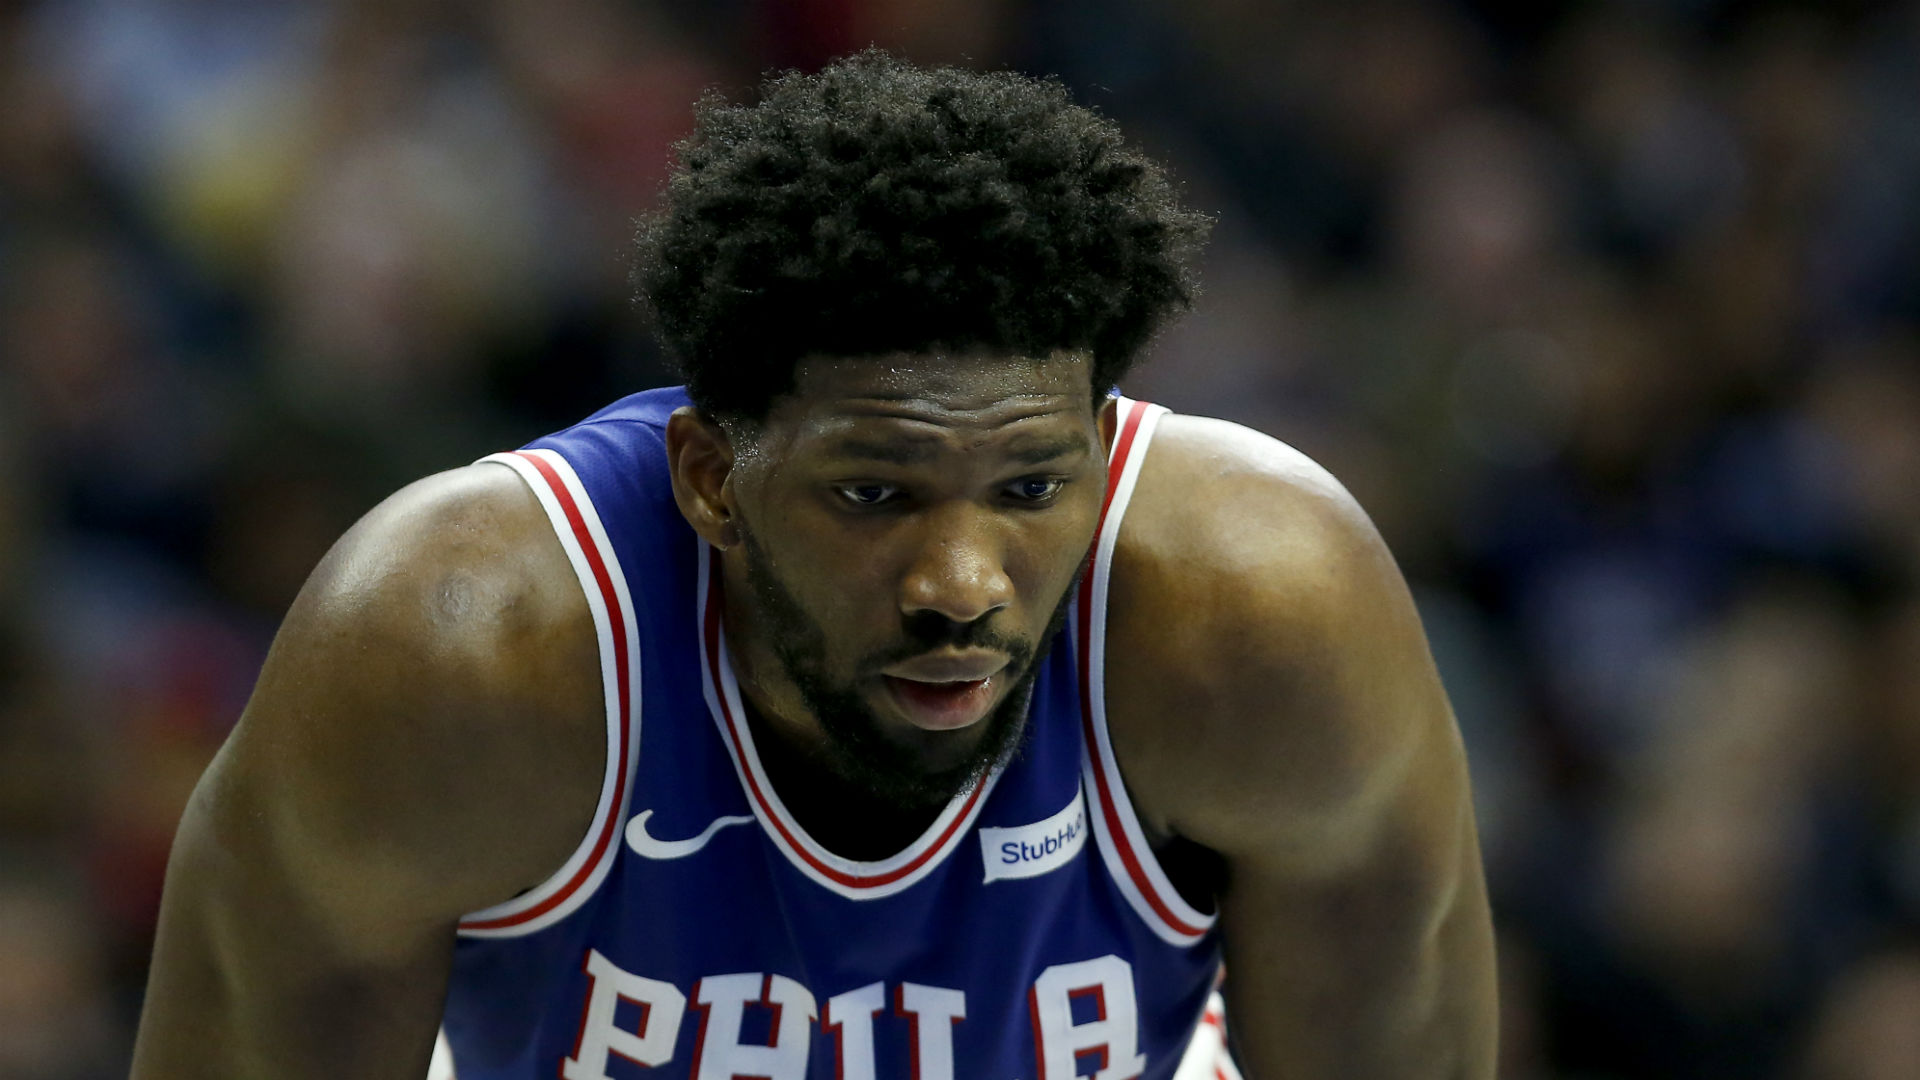 The Philadelphia 76ers impressed in a surprise victory against the Cleveland Cavaliers in the NBA.